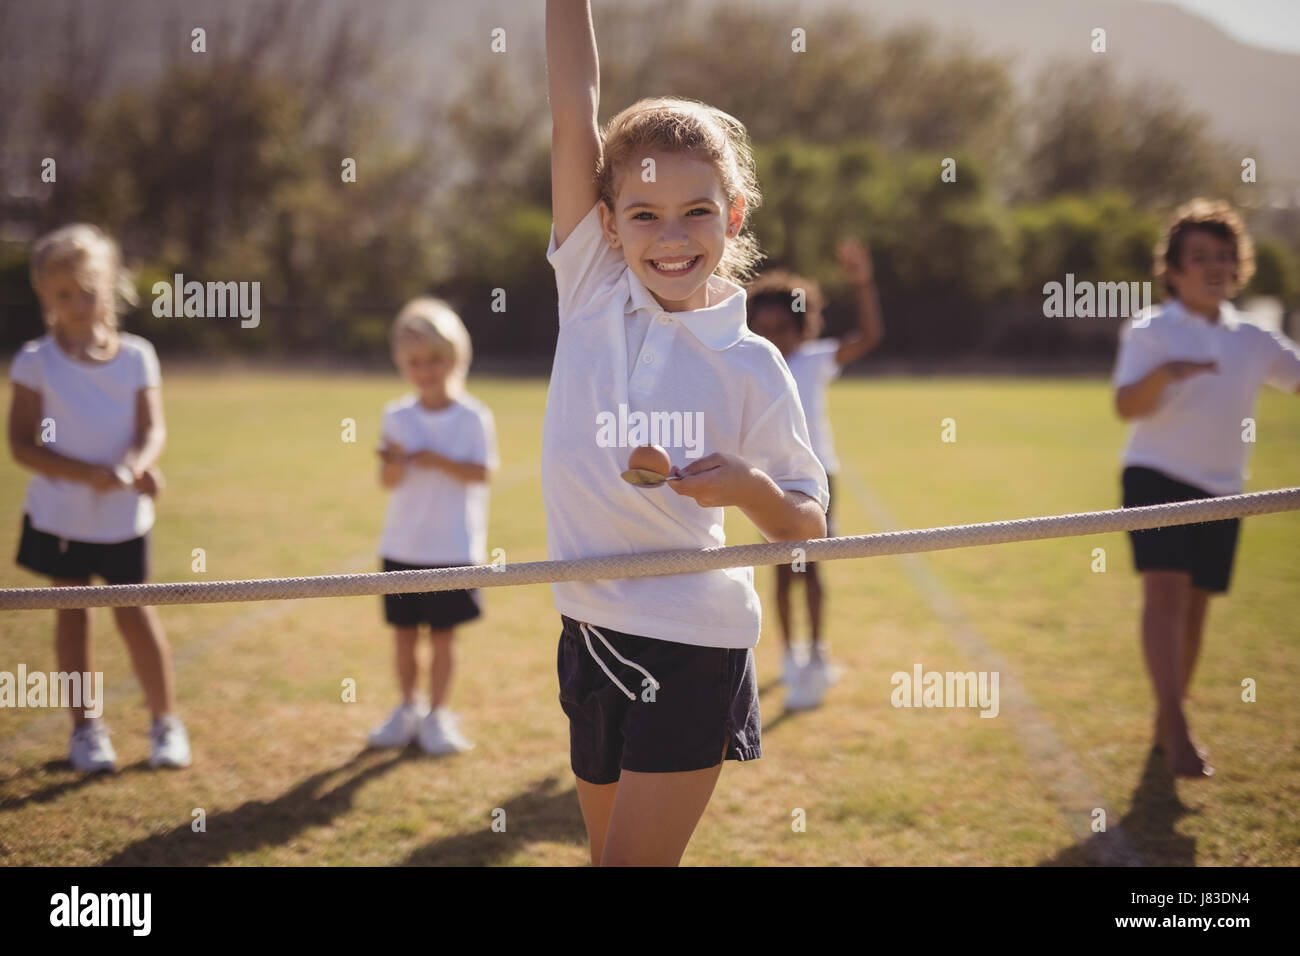 Portrait of happy schoolgirl wining egg and spoon race in park - Stock Image